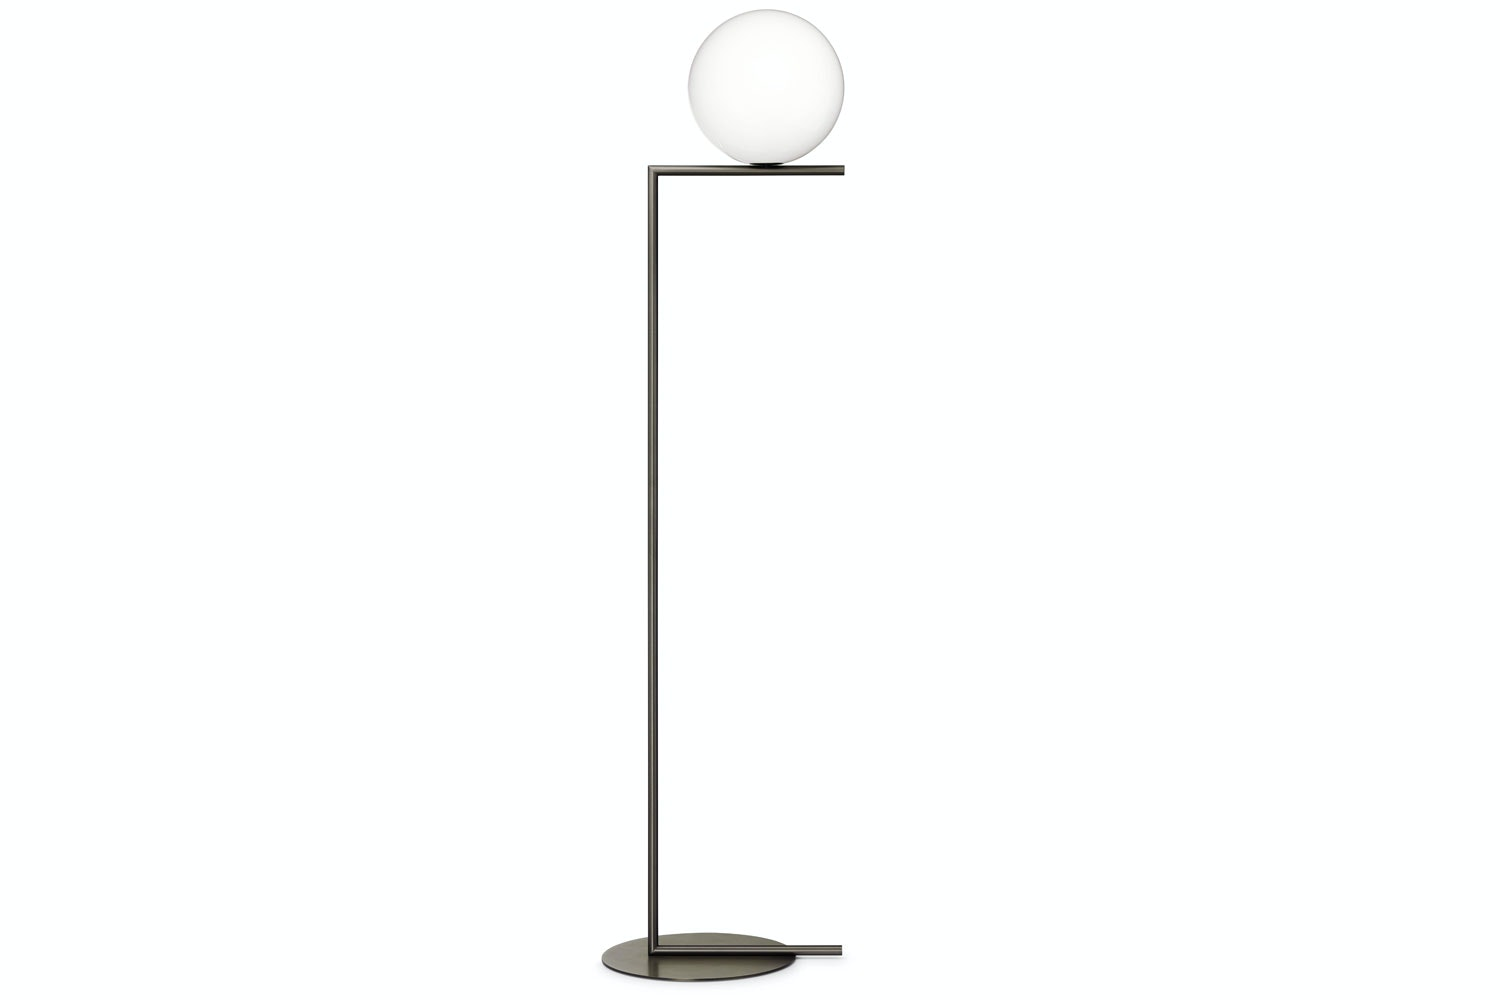 IC FLOOR LIGHT by Michael Anastassiades for Flos